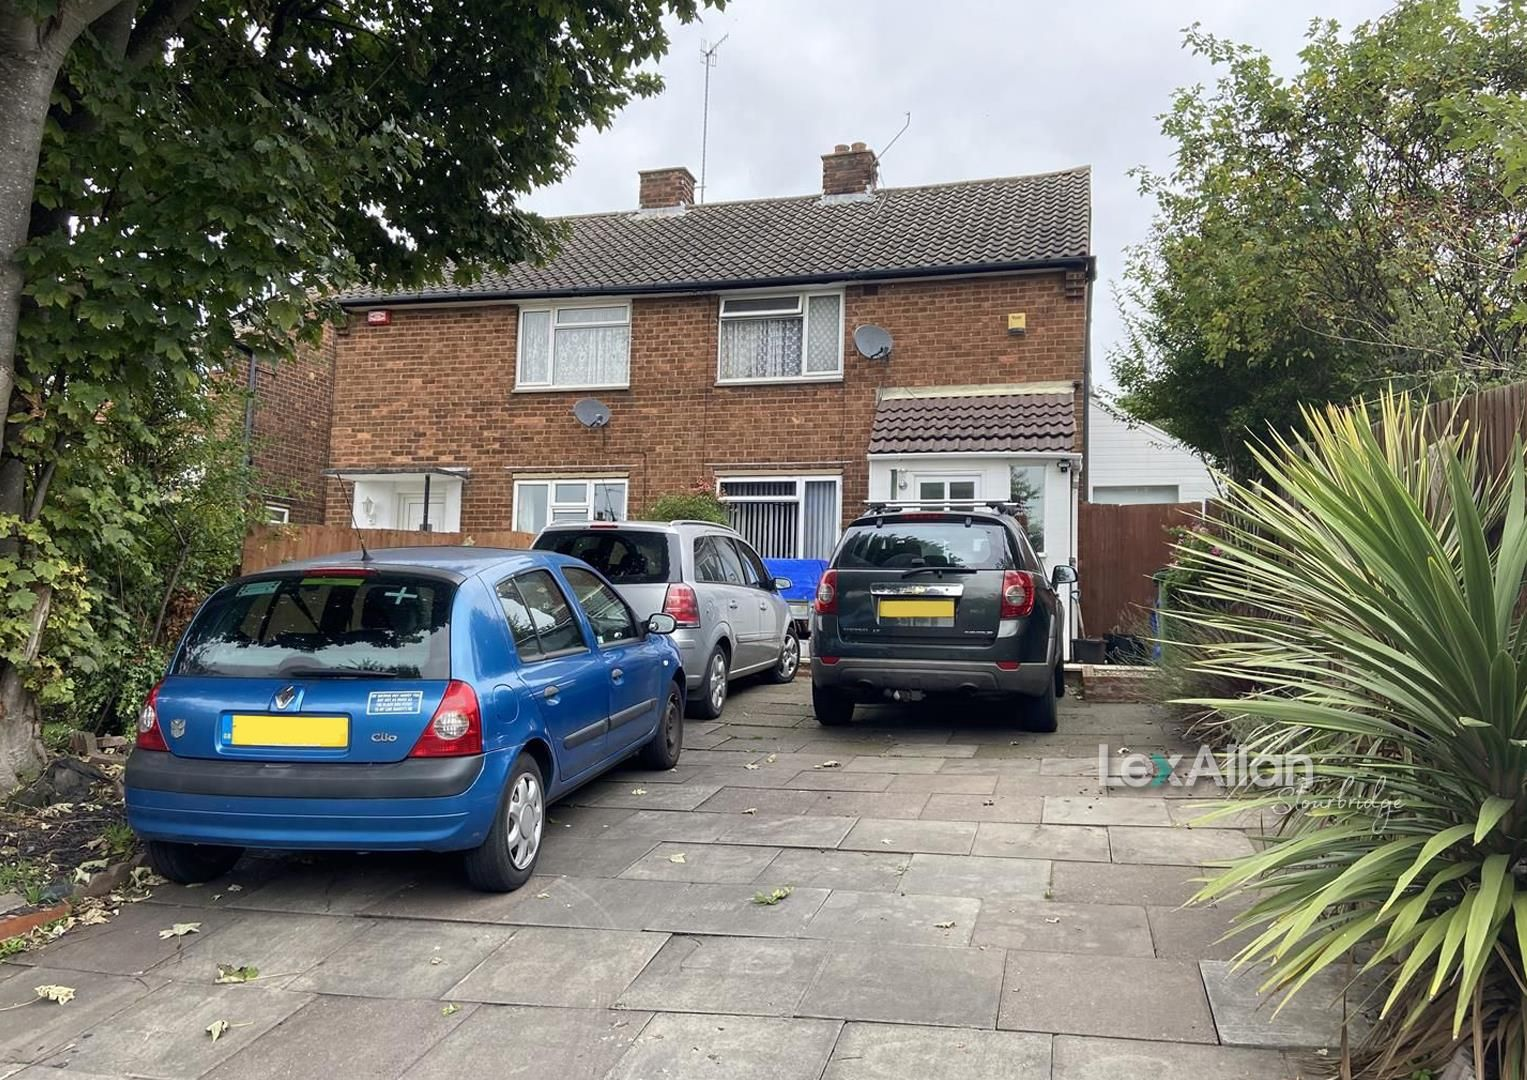 2 bed semi-detached for sale, DY5